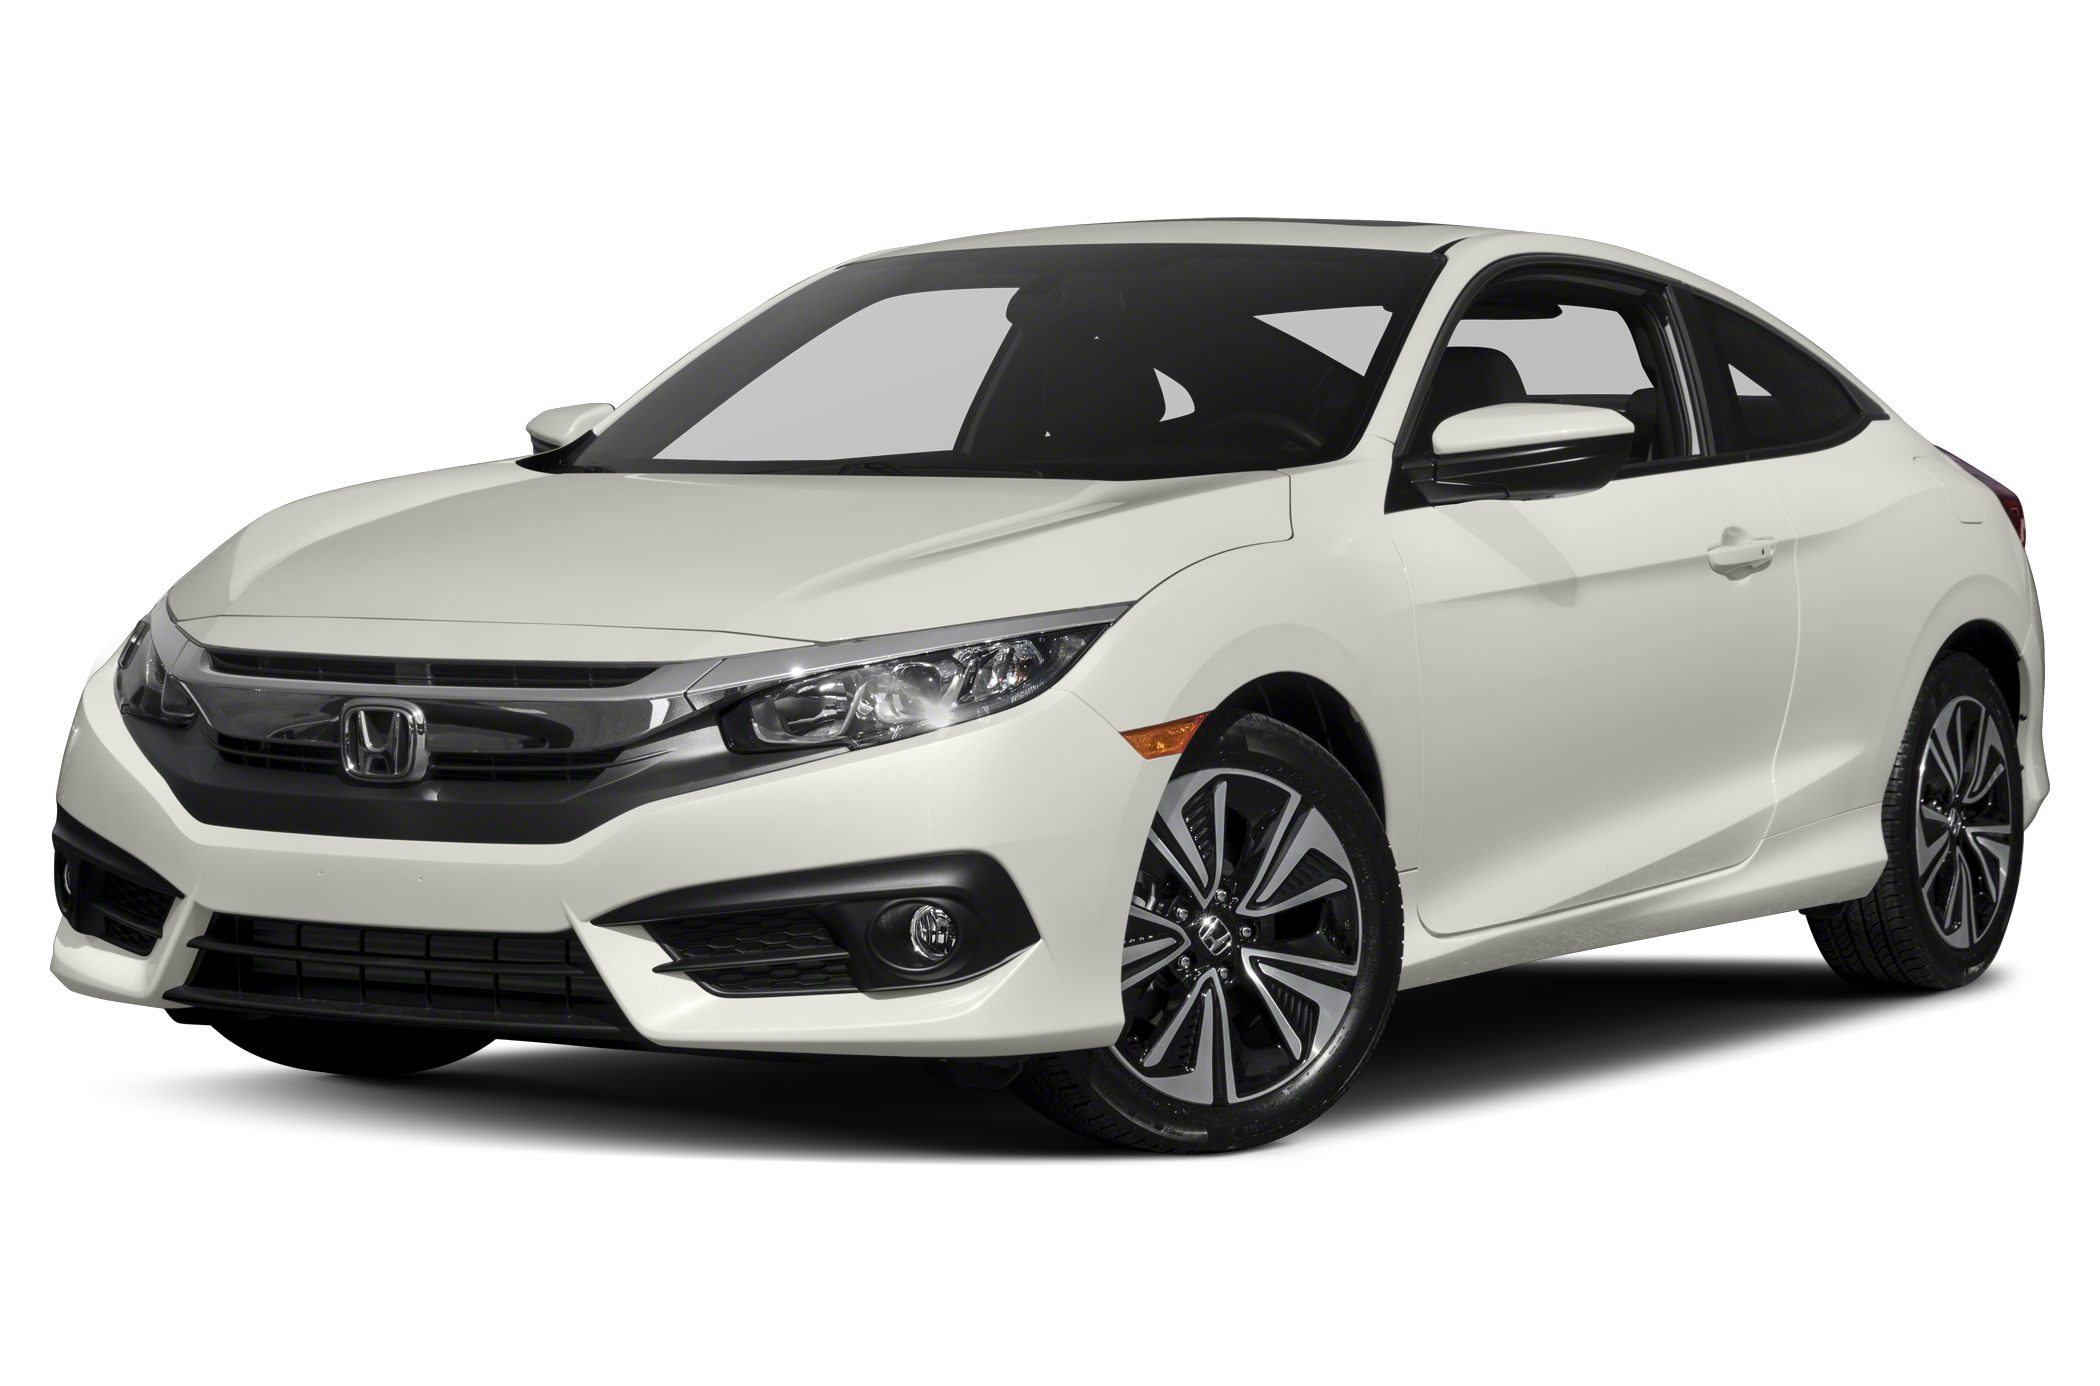 Used Cars for Sale Near Me Under 6000 New Used Cars for Sale at Grainger Honda In Savannah Ga Under 6 000